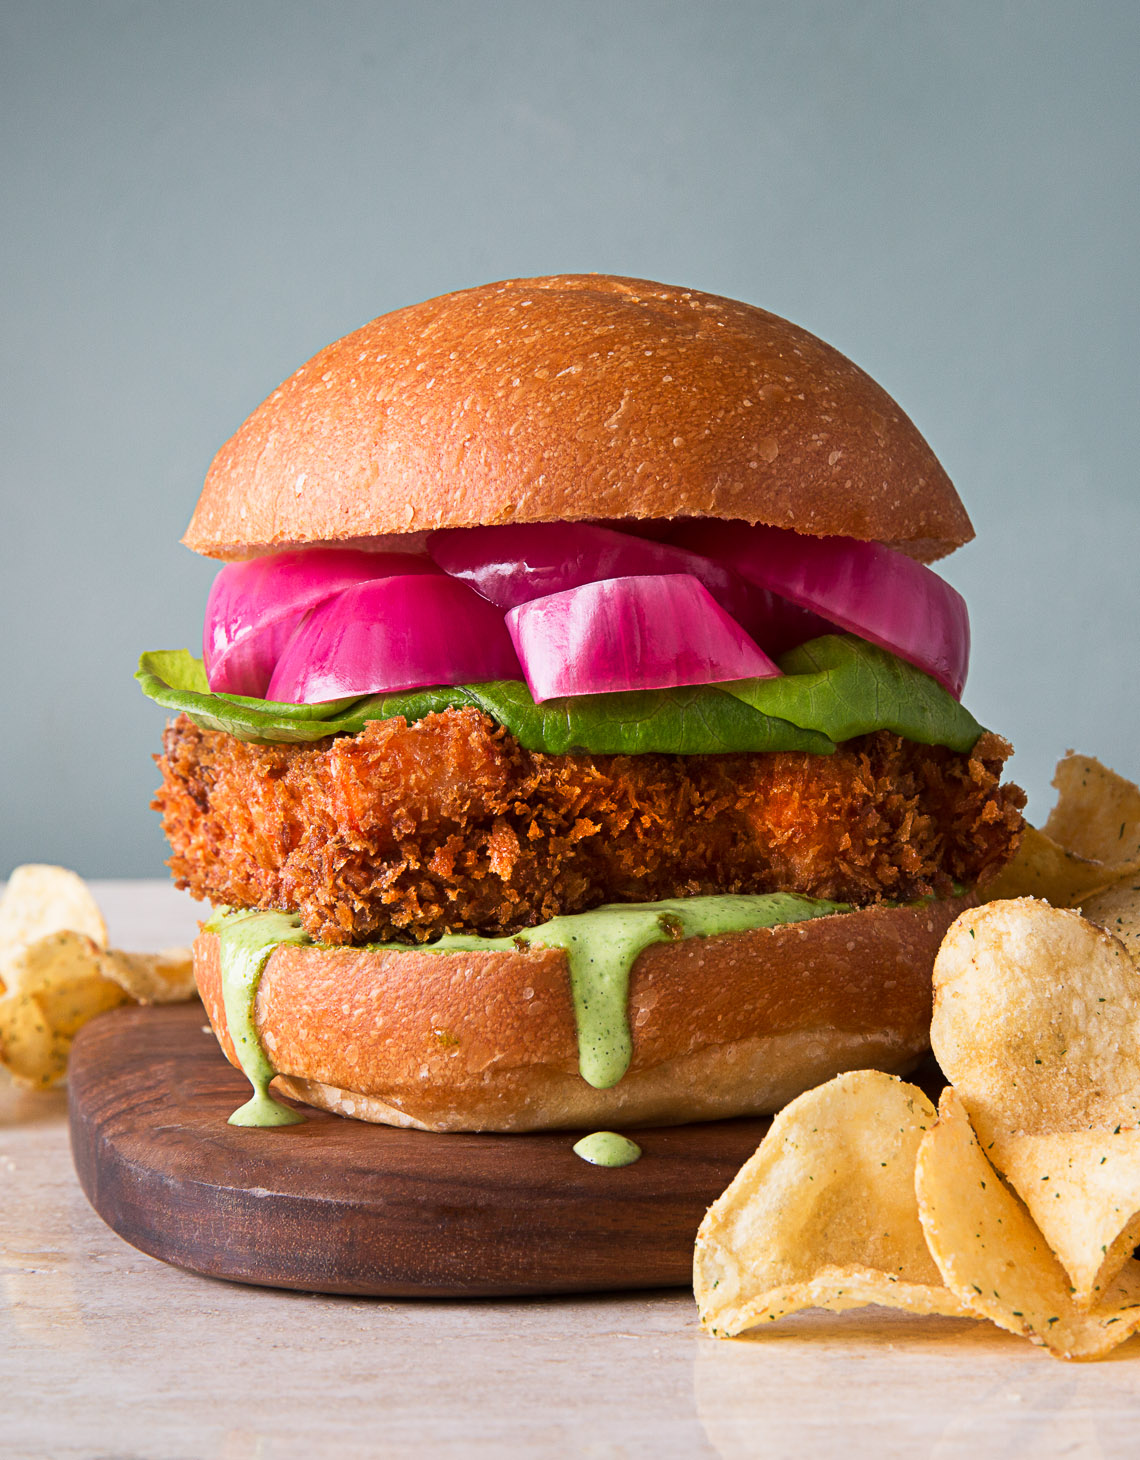 The Healthy Option Salmon Burger